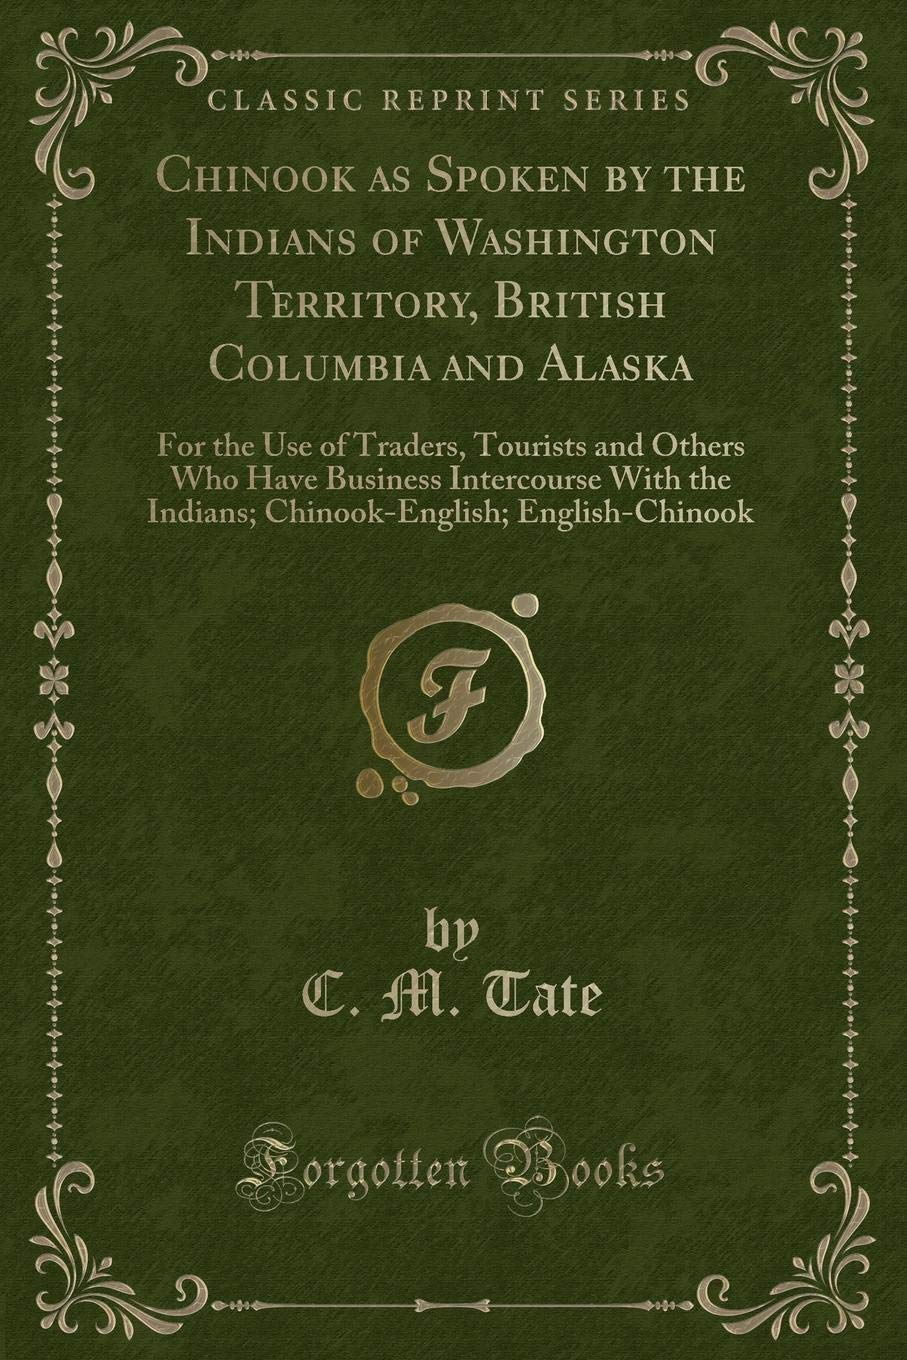 Chinook as Spoken by the Indians of Washington Territory, British Columbia and Alaska: For the Use of Traders, Tourists and Others Who Have Business ... English-Chinook (Classic Reprint) pdf